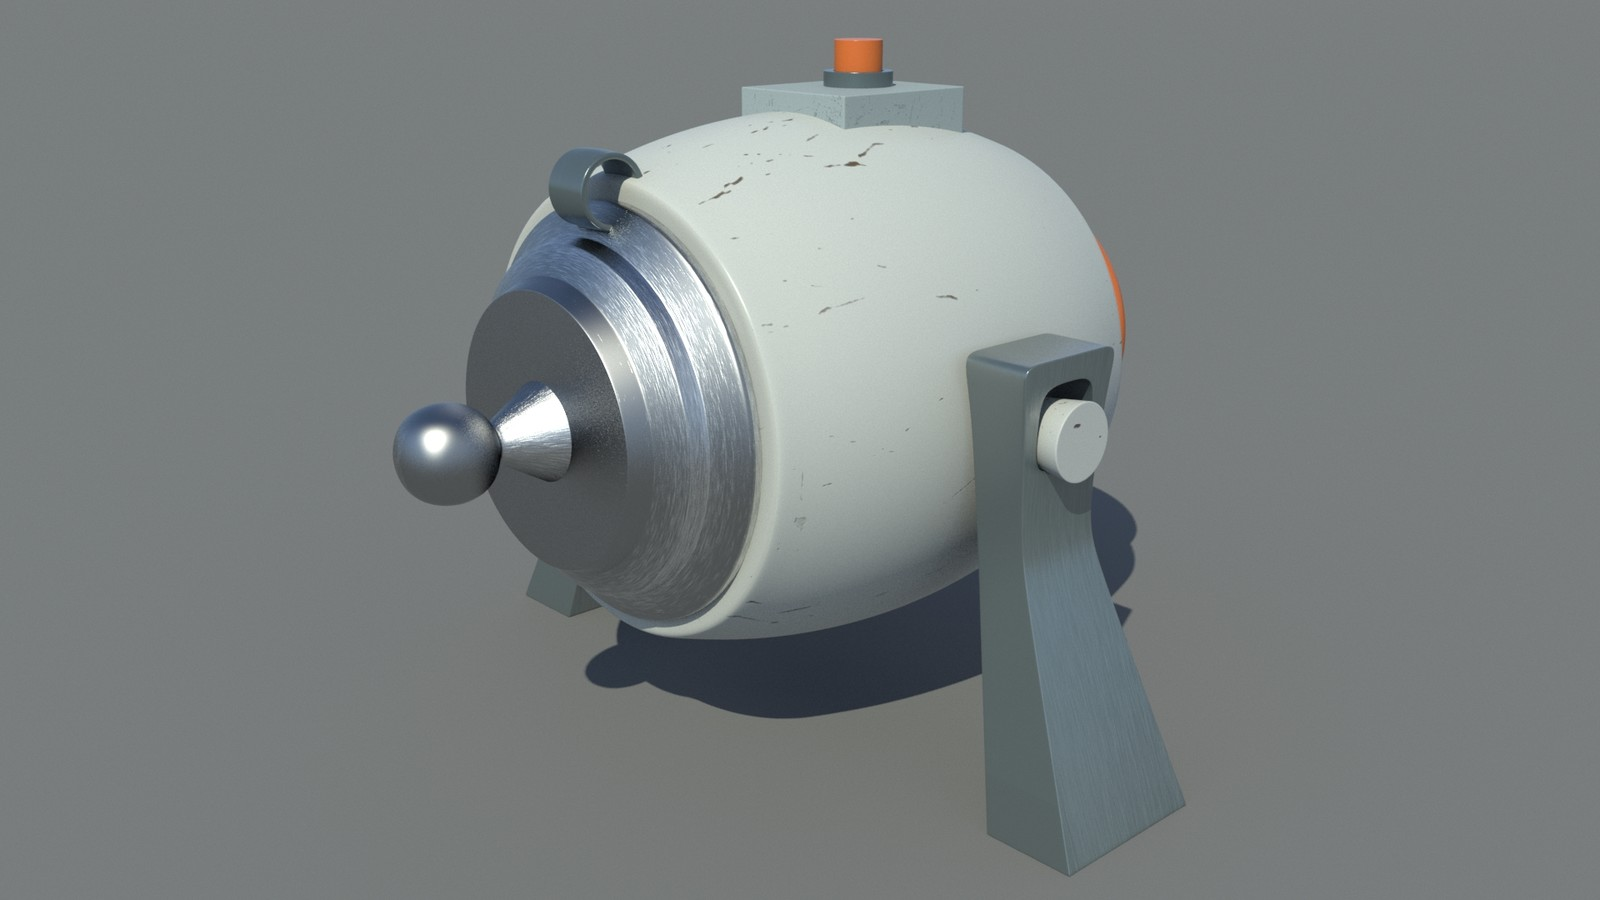 Concept, model, shading and texturing